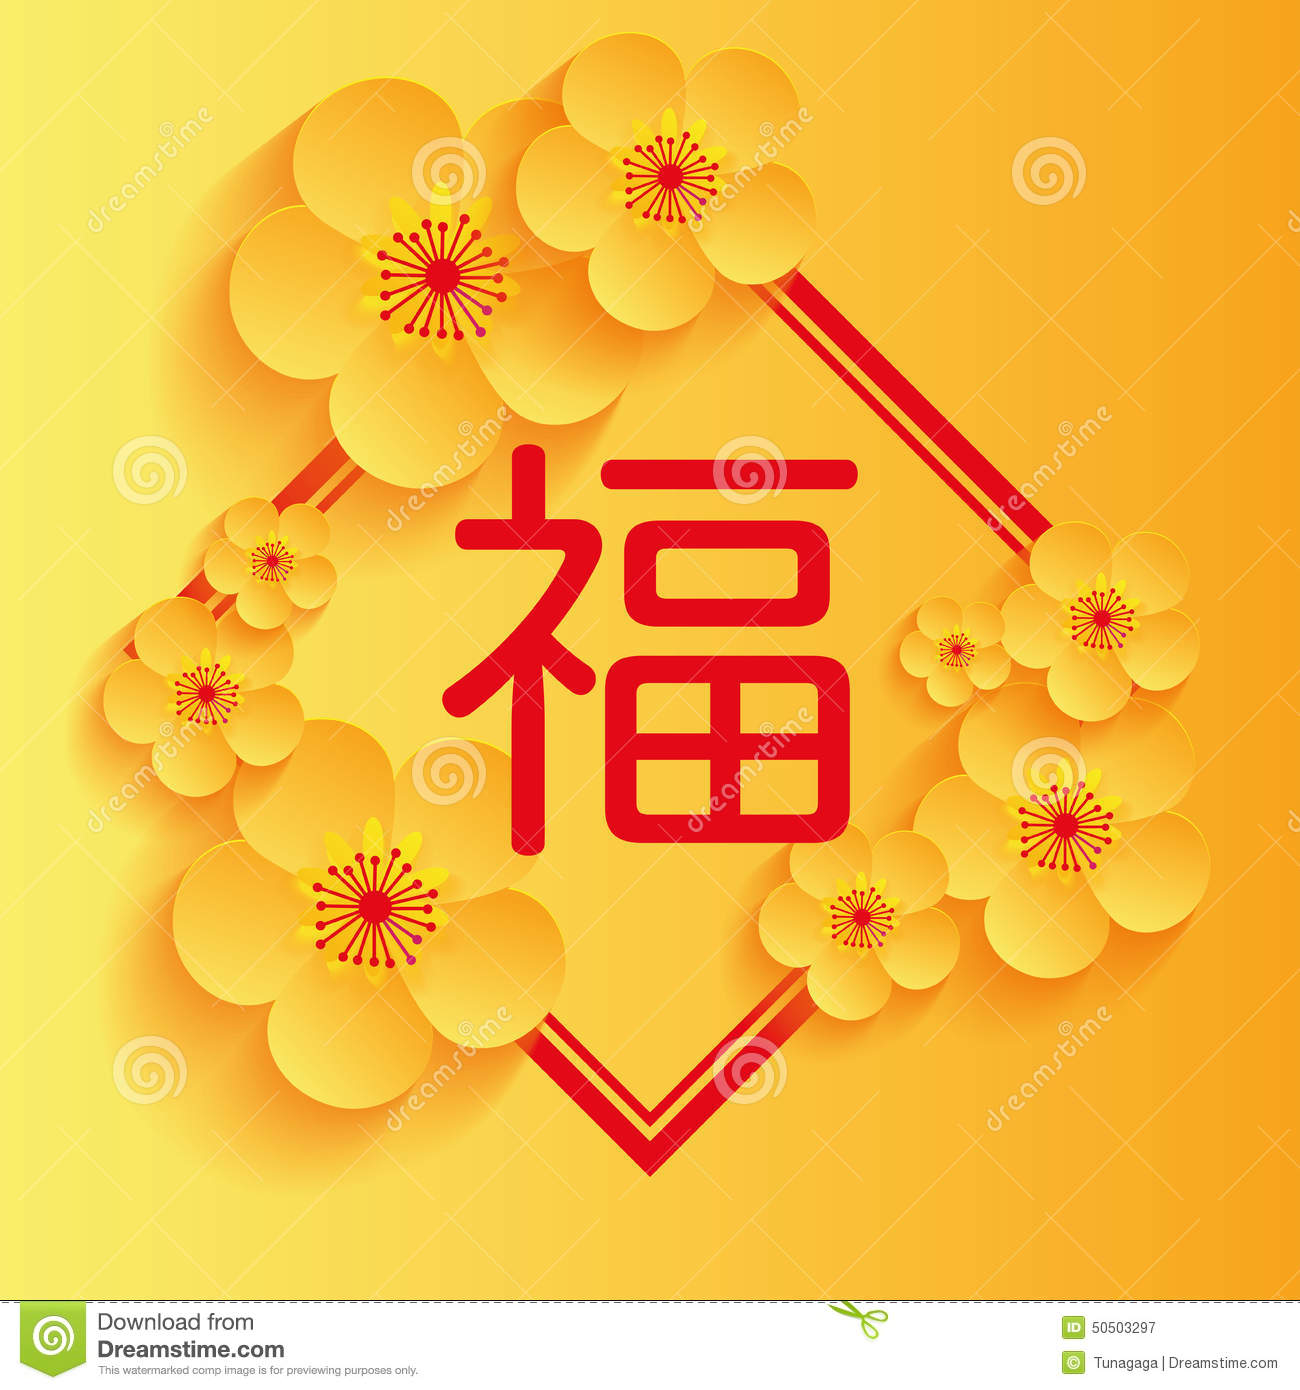 Chinese new year greeting card design stock illustration download chinese new year greeting card design stock illustration illustration of illustration card m4hsunfo